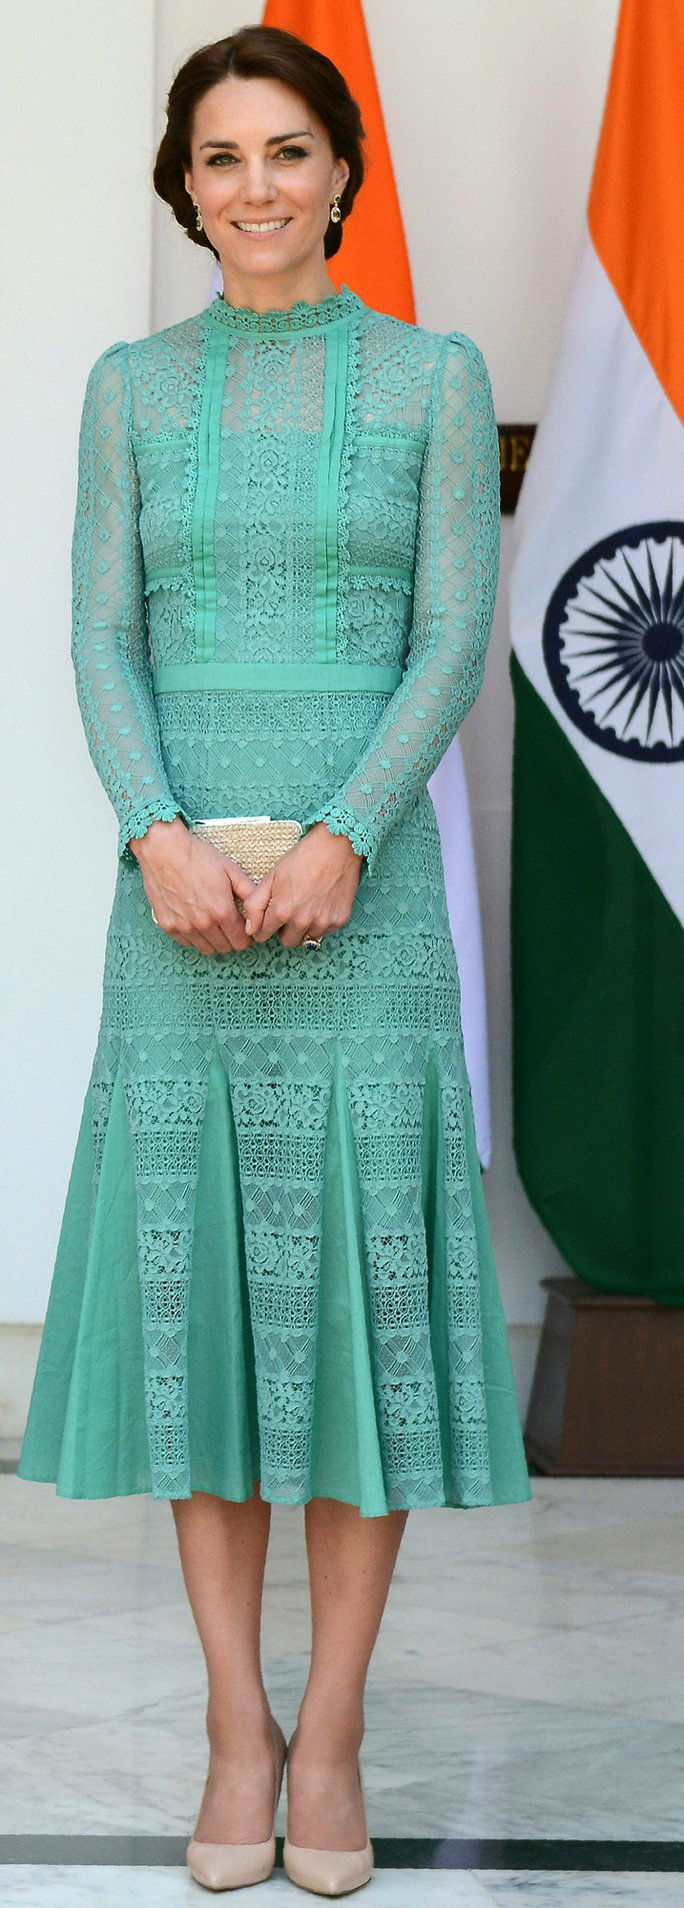 ब्रिटेन's Catherine, Duchess of Cambridge looks on ahead of a lunch event with India's Prime Minister Narendra Modi at Hyderabad House in New Delhi on April 12, 2016.